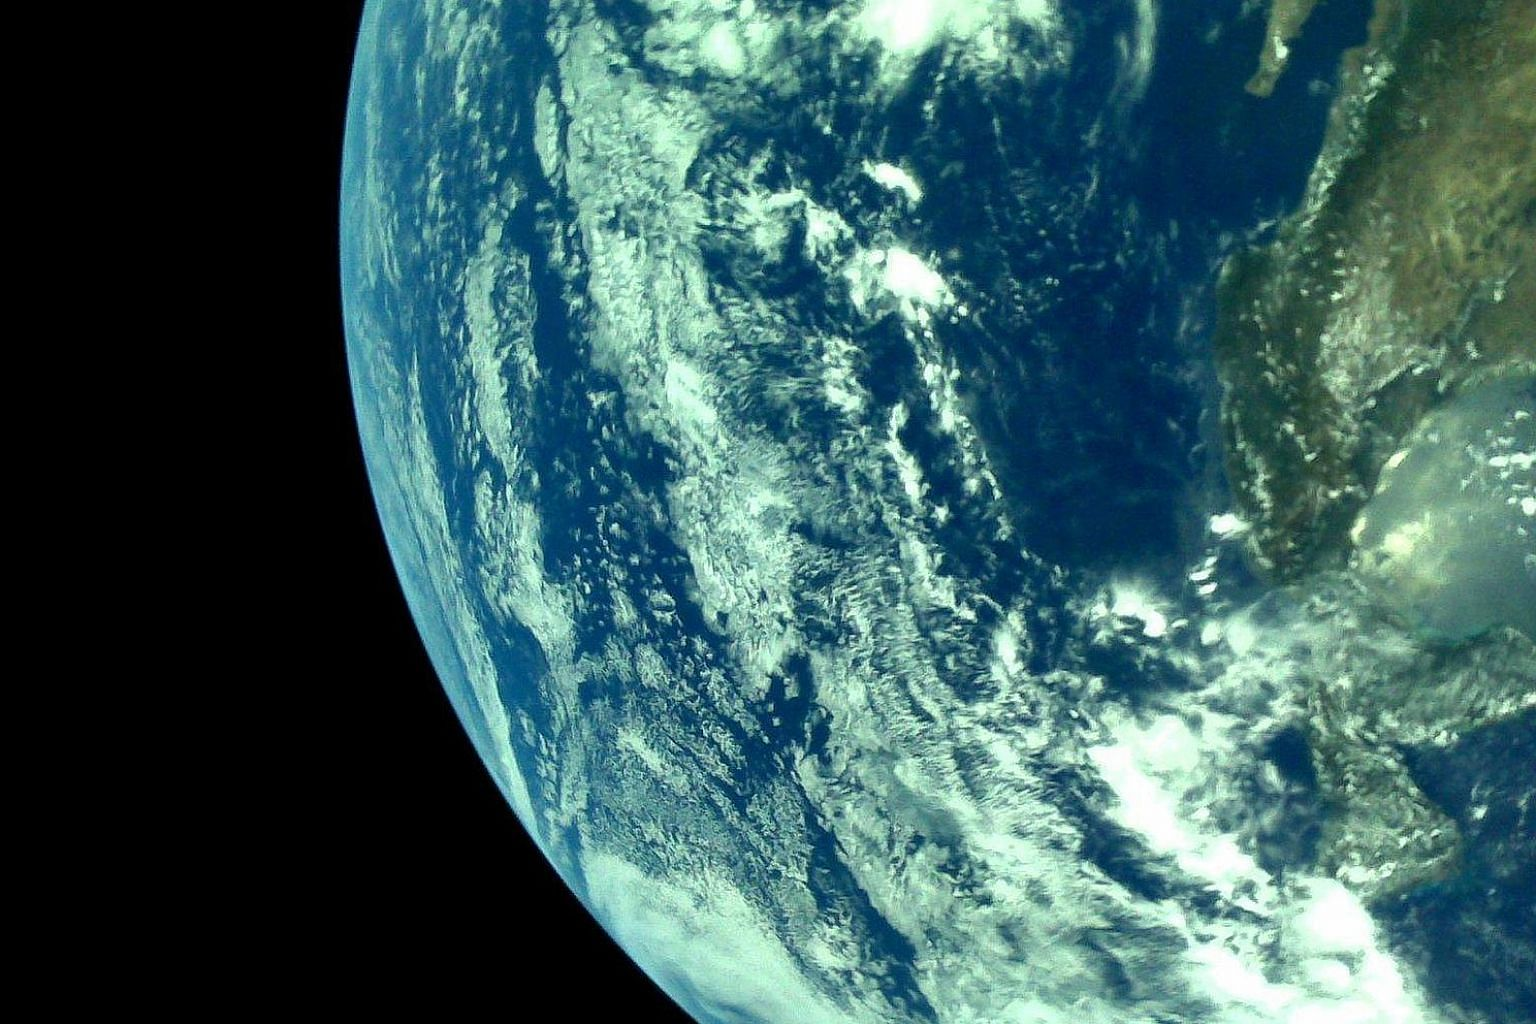 India's space agency yesterday tweeted the first pictures of the Earth from Chandrayaan-2, which was launched on July 22.